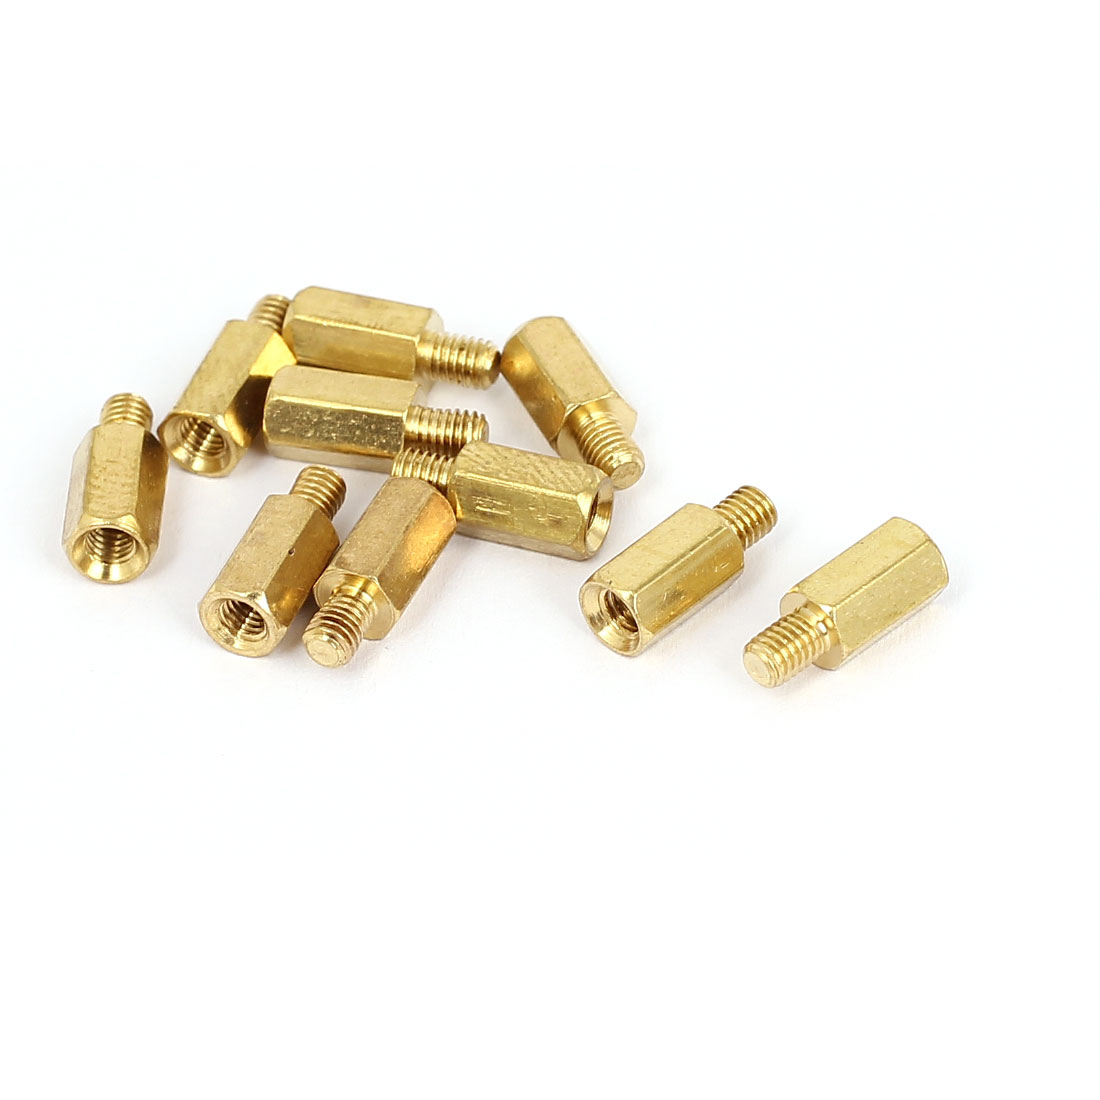 M3x7mm+4mm Male to Female Thread 0.5mm Pitch Brass Hex Standoff Spacer 10Pcs